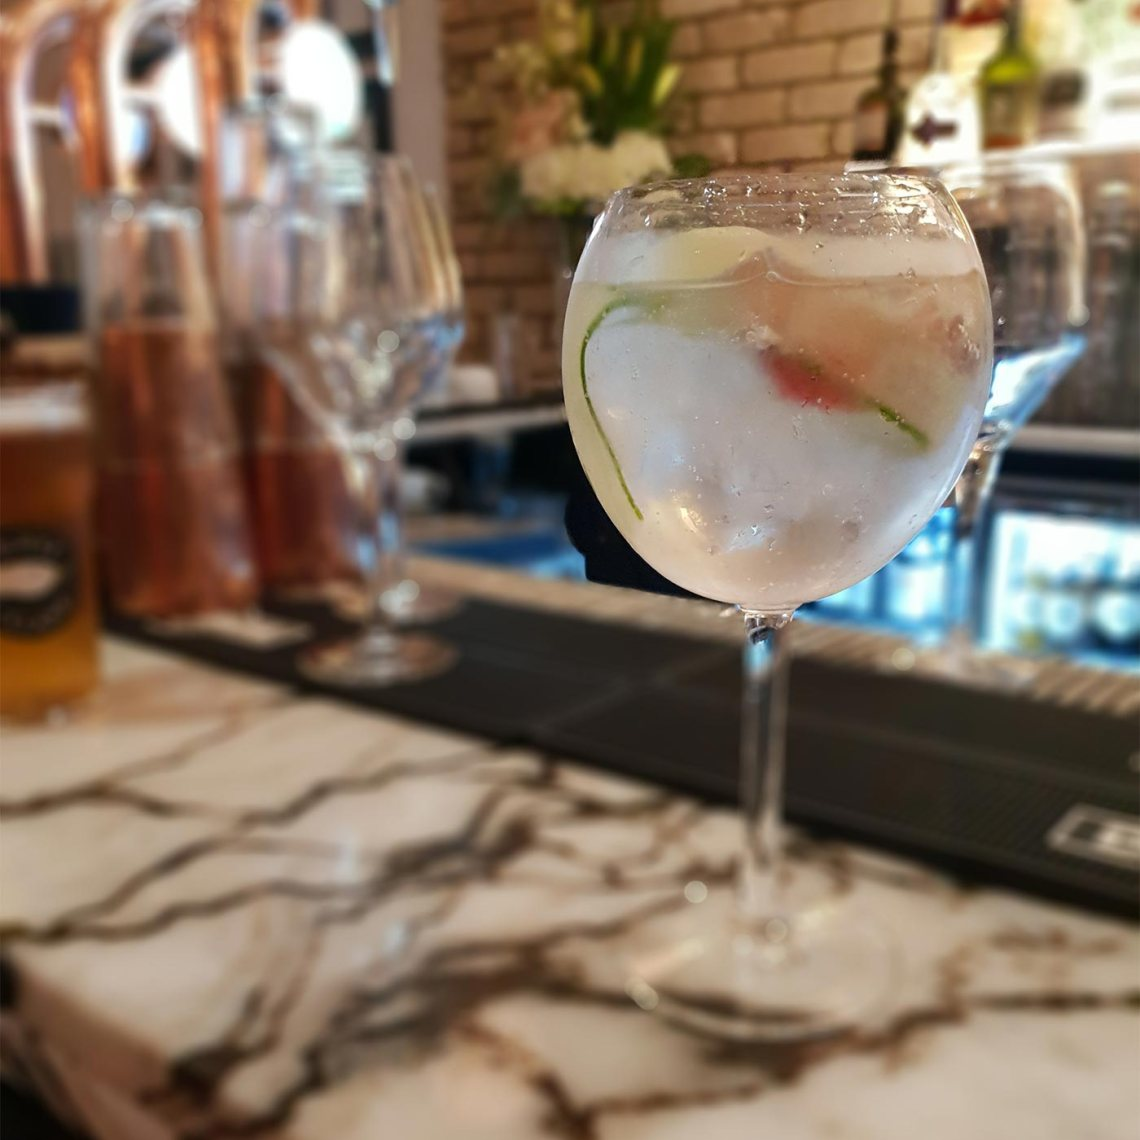 A balloon glass of Hendricks Gin Fever Tree tonic sitting on a marble bar. Castle Street Townhouse, Liverpool - Female Original